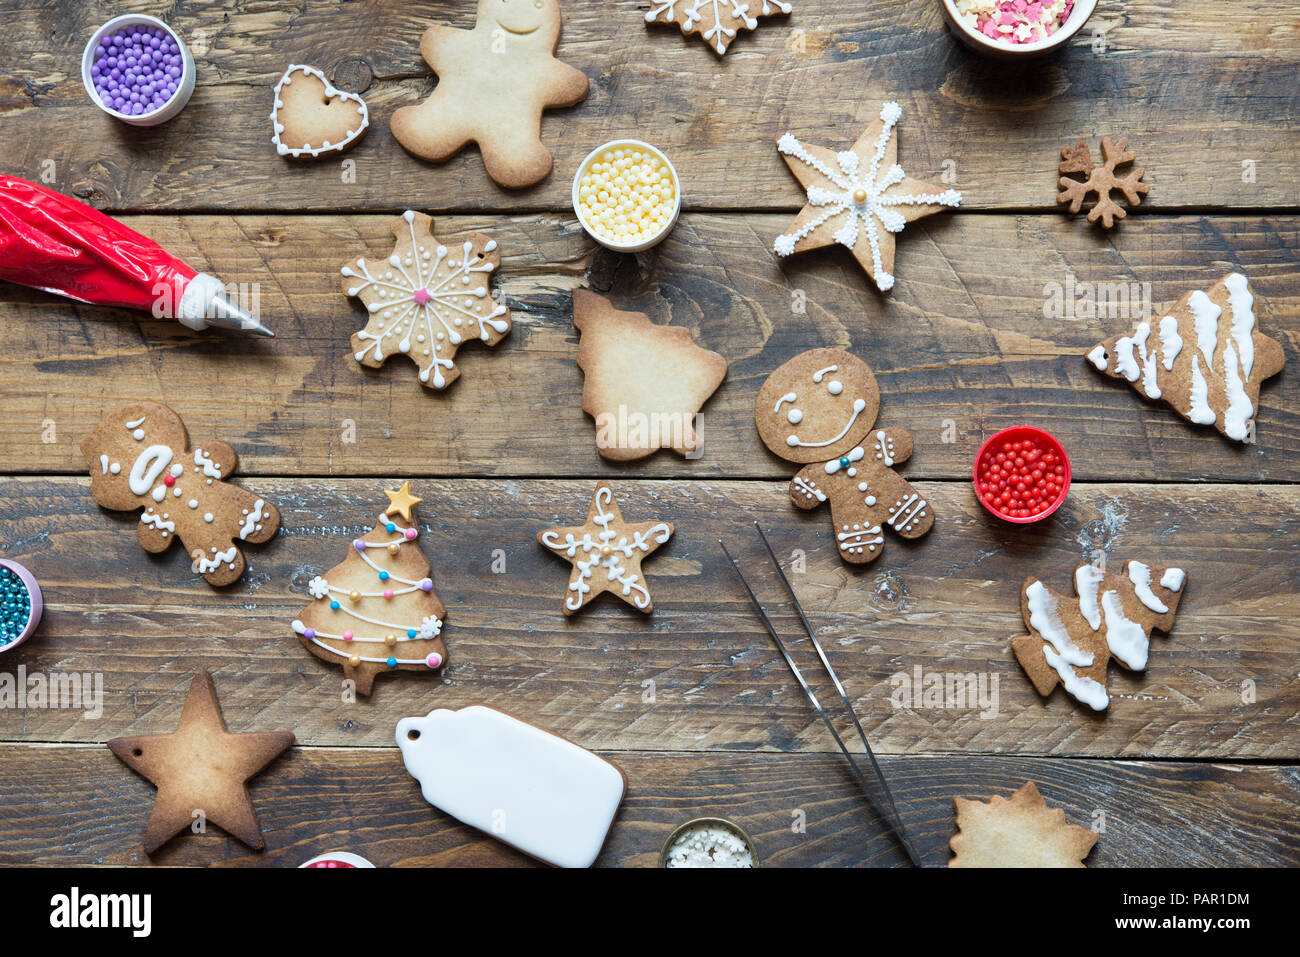 Various Gingerbread Cookies on wood - Stock Image